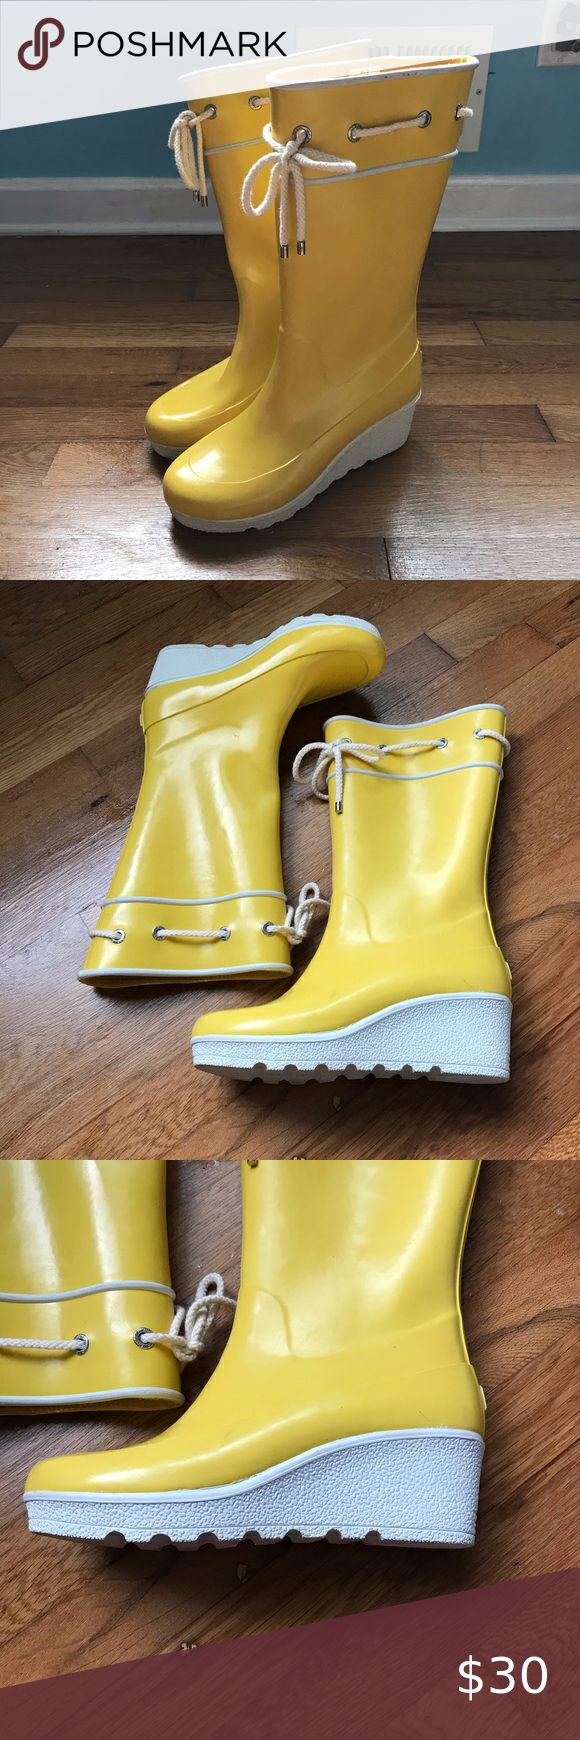 Bogs Sidney Lace Up Rubber Rain/Snow Boots | Rain and snow